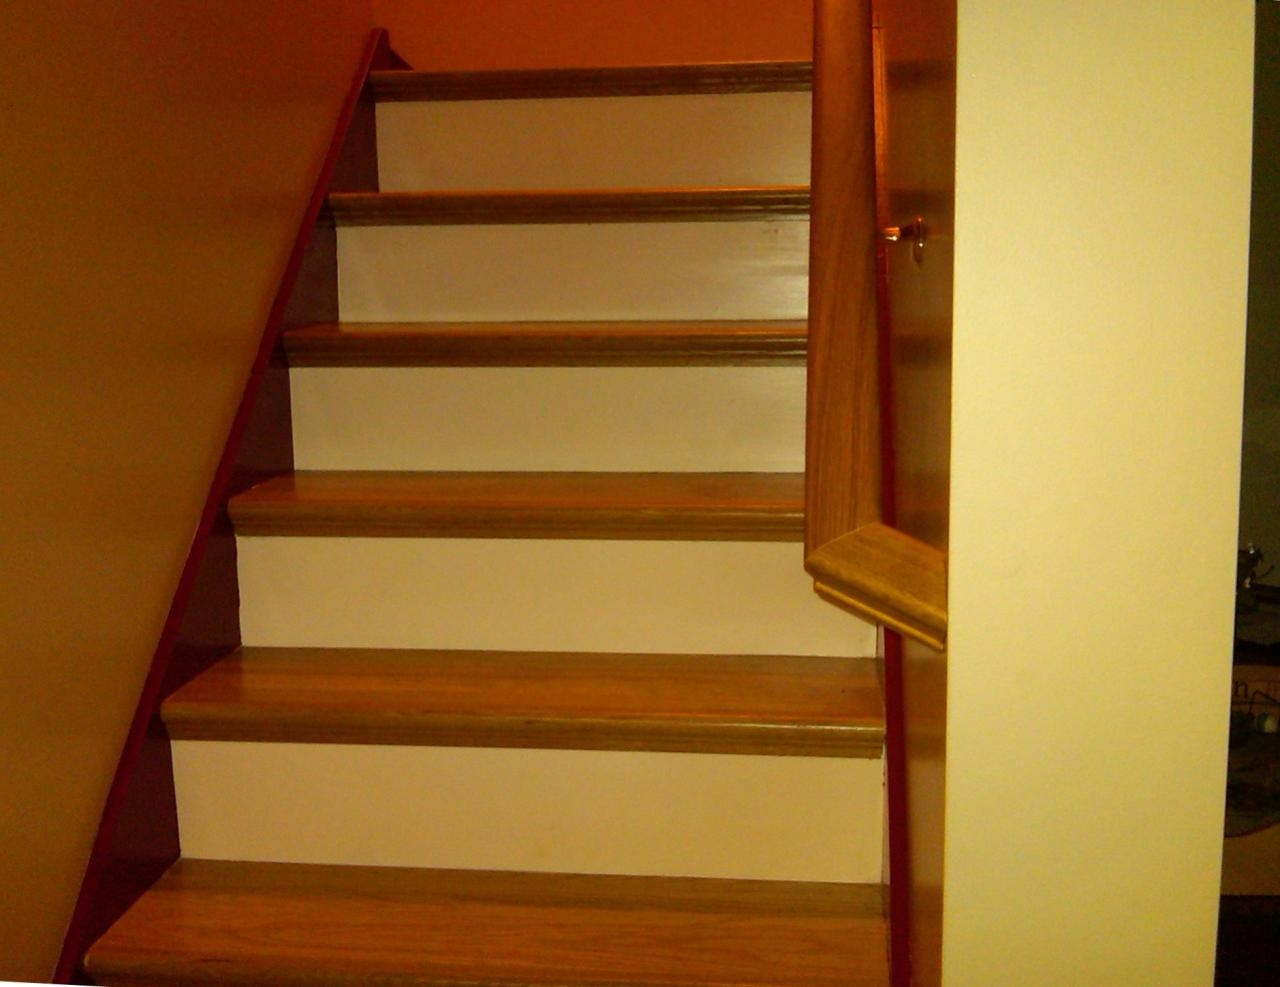 Bennett Stair Company Inc Remodels Nustair Installations | Oak Stairs With White Risers | Natural | Red Oak | Character | Hardwood | Dark Walnut Staircase